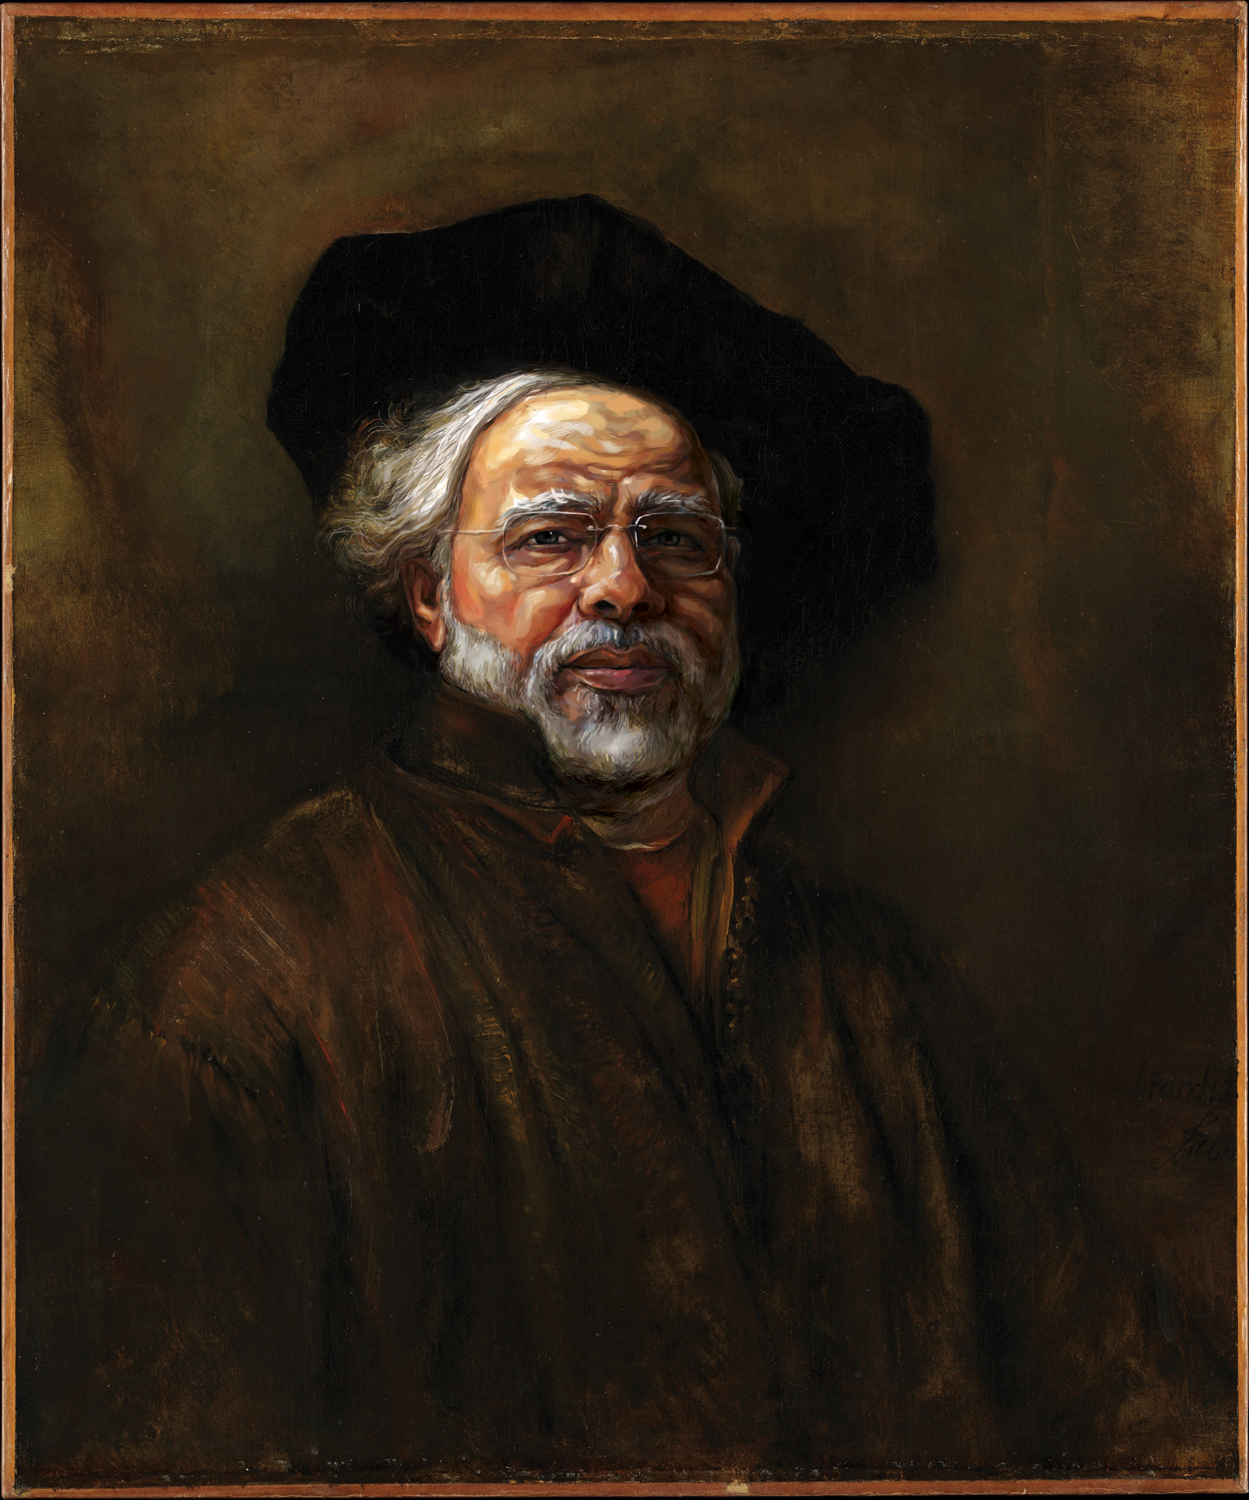 Narendra Modi as the famous Dutch portrait painter Rembrandt